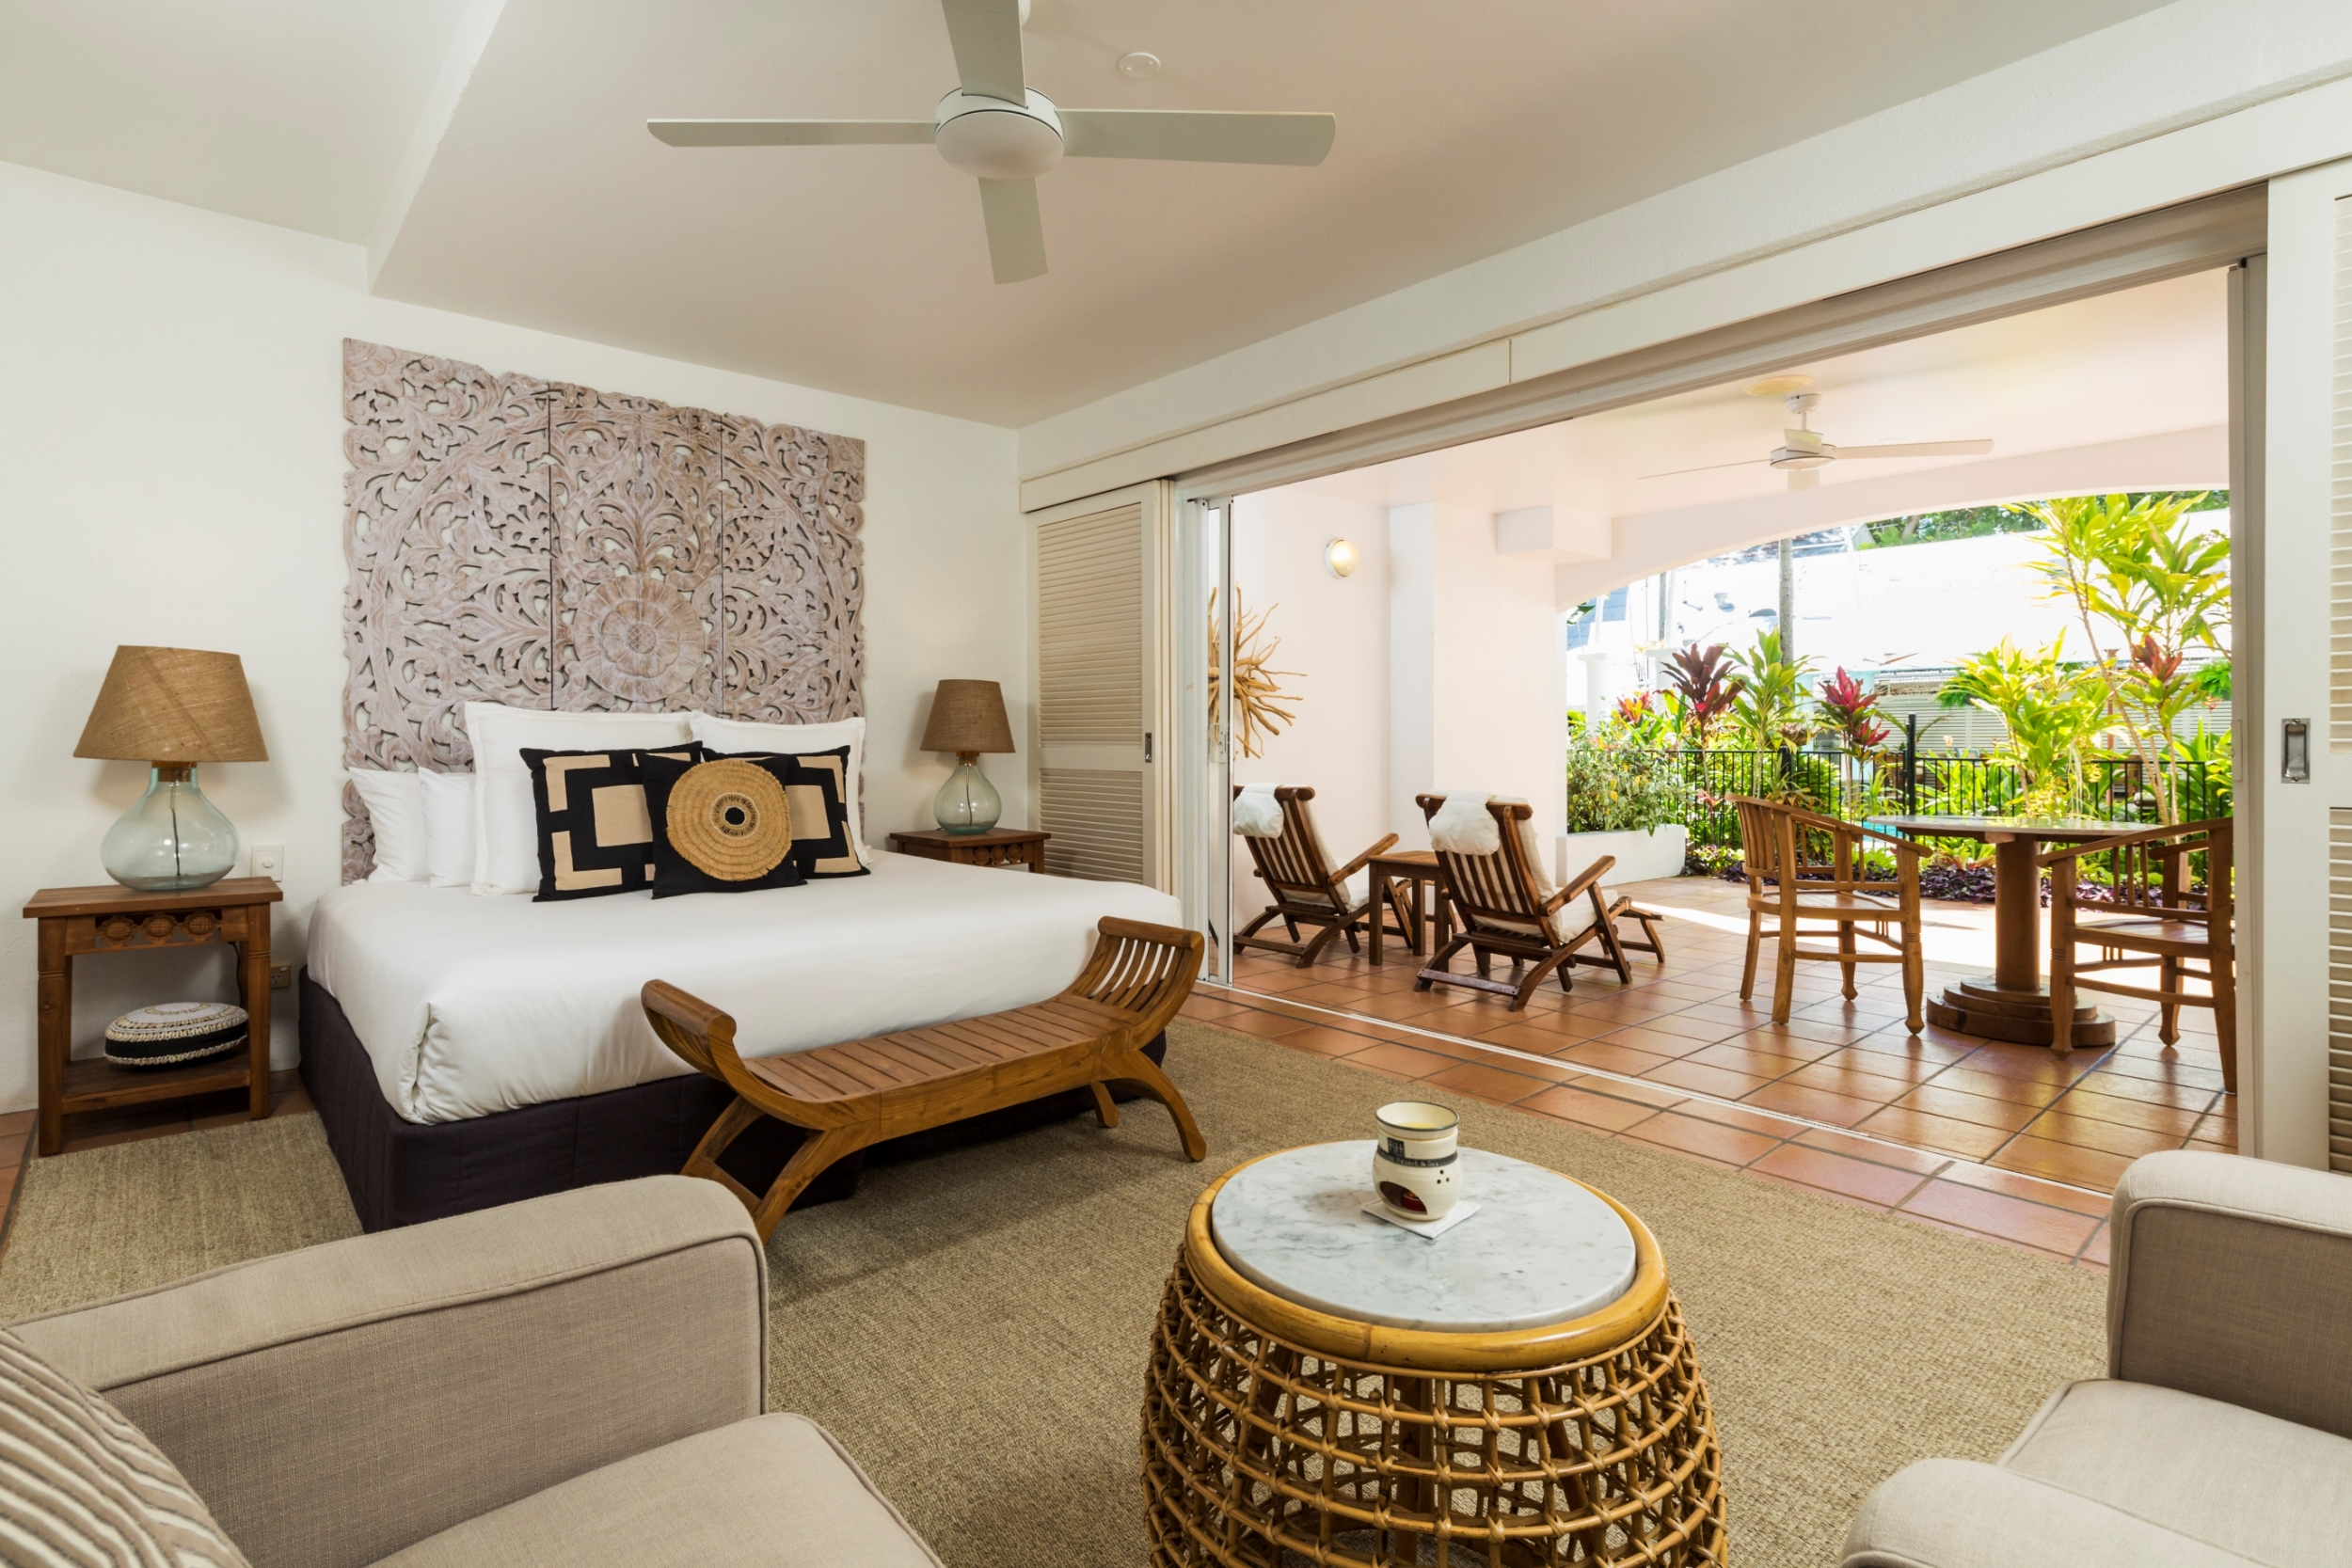 Verandah King Room